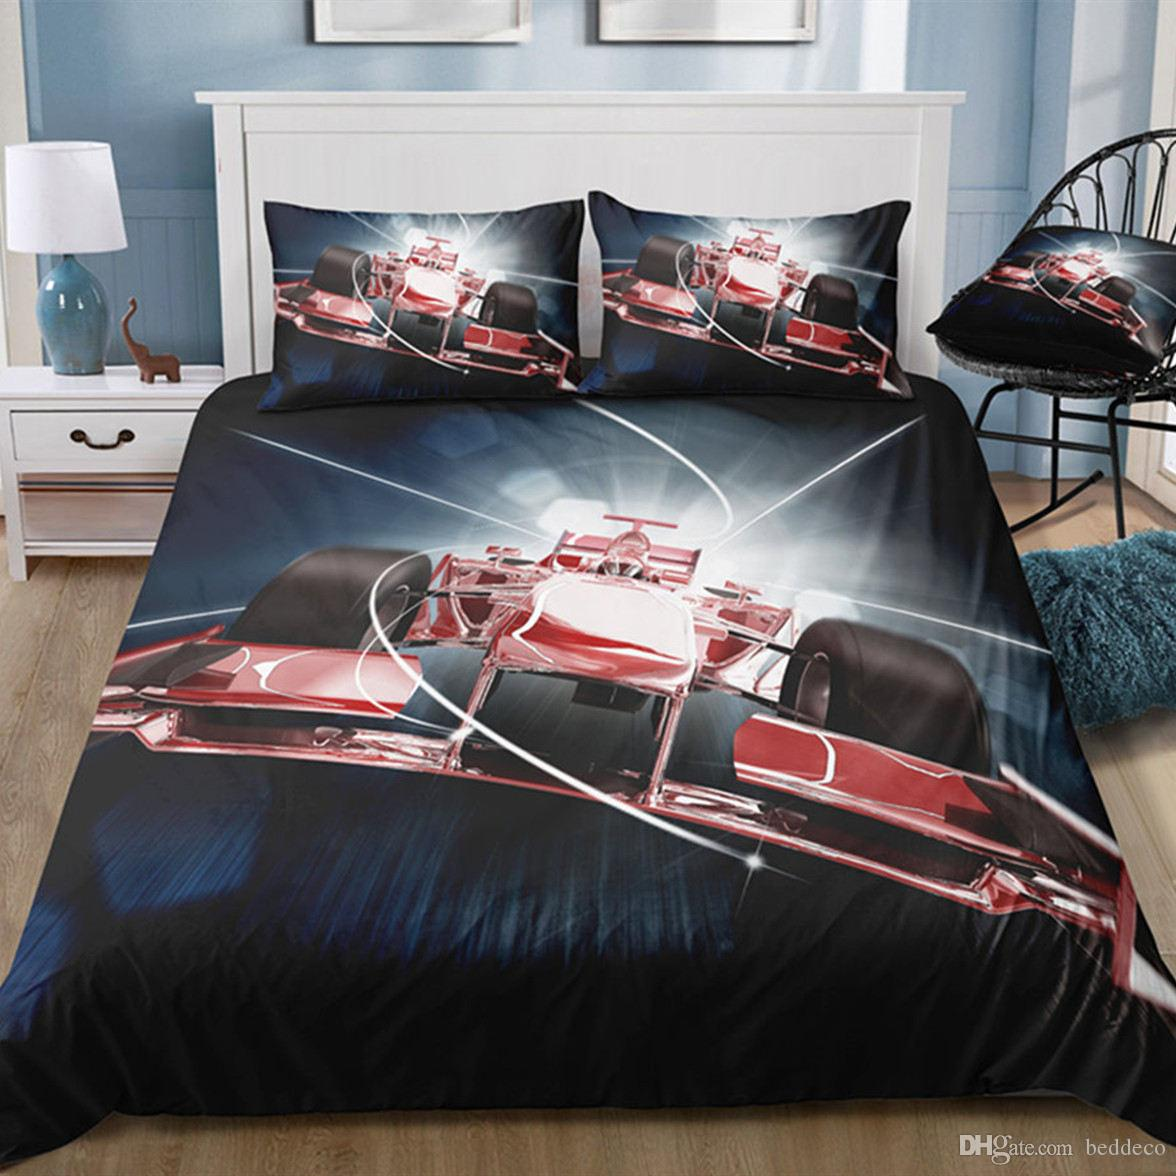 King Size Bedding Set Racing Car la mode cool Vente Hot Housse de couette Reine double pleine double Lit simple couverture avec Taie